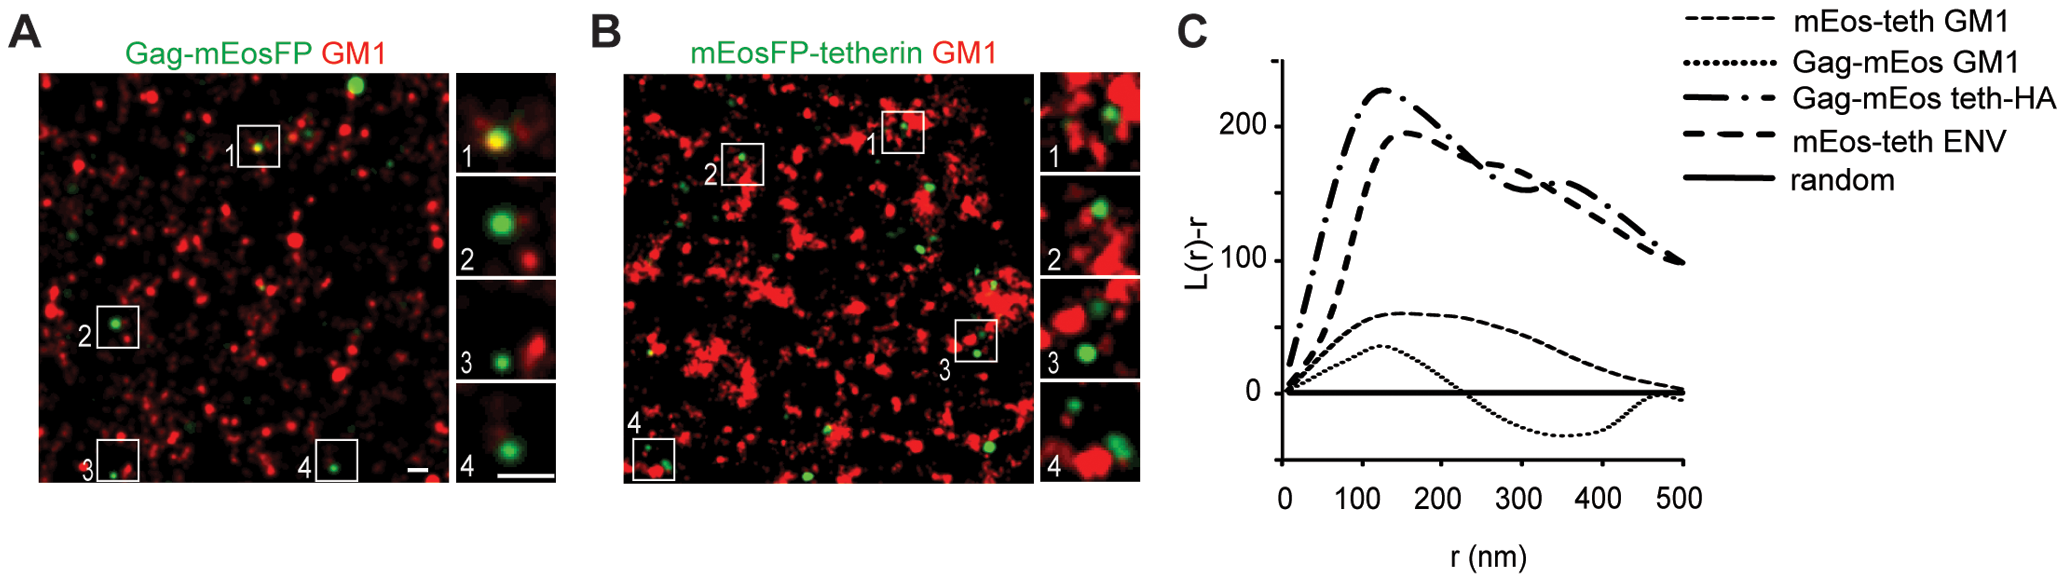 Tetherin domains and HIV-1 budding sites do not overlap with GM1 containing lipid rafts.